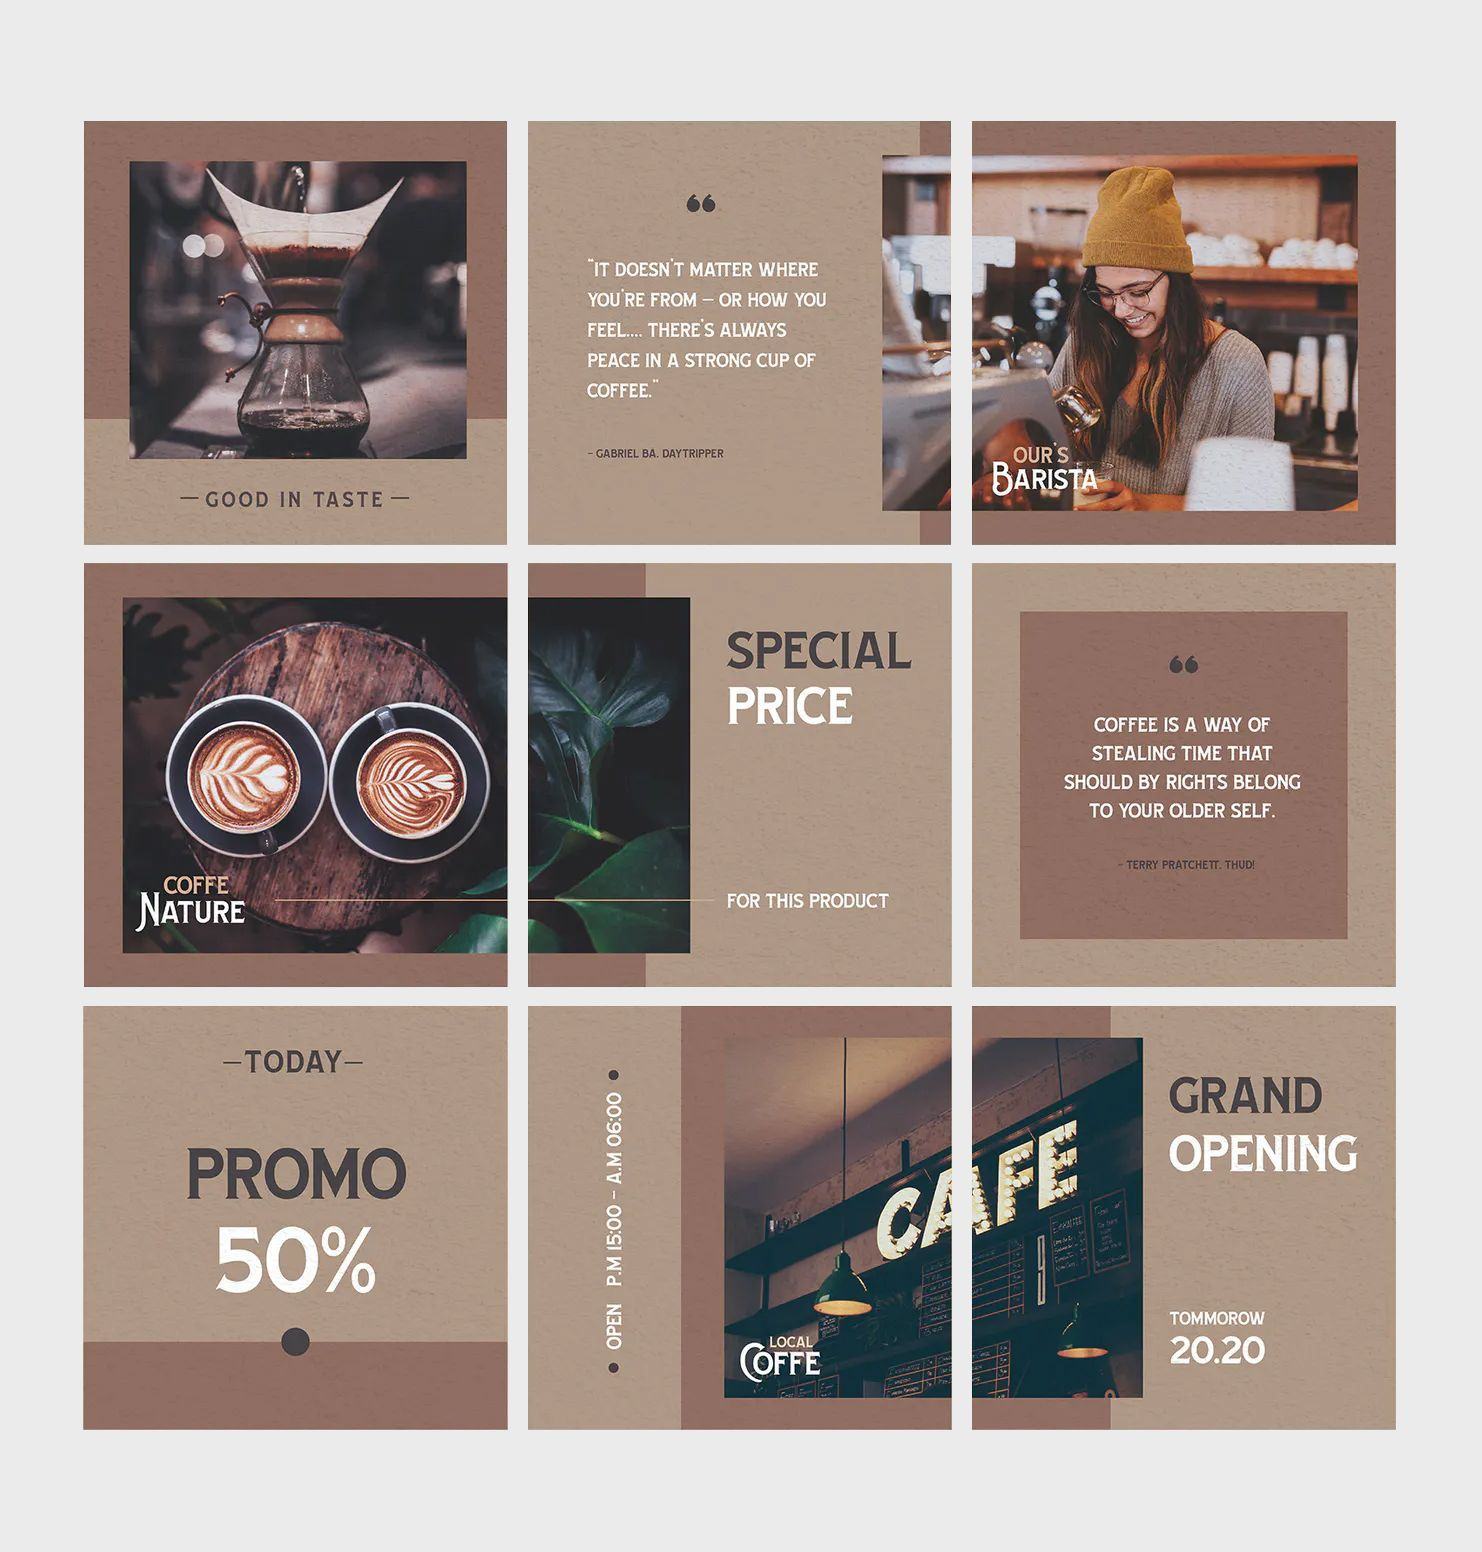 Coffee Shop Instagram Puzzle Template   Instagram feed layout ...